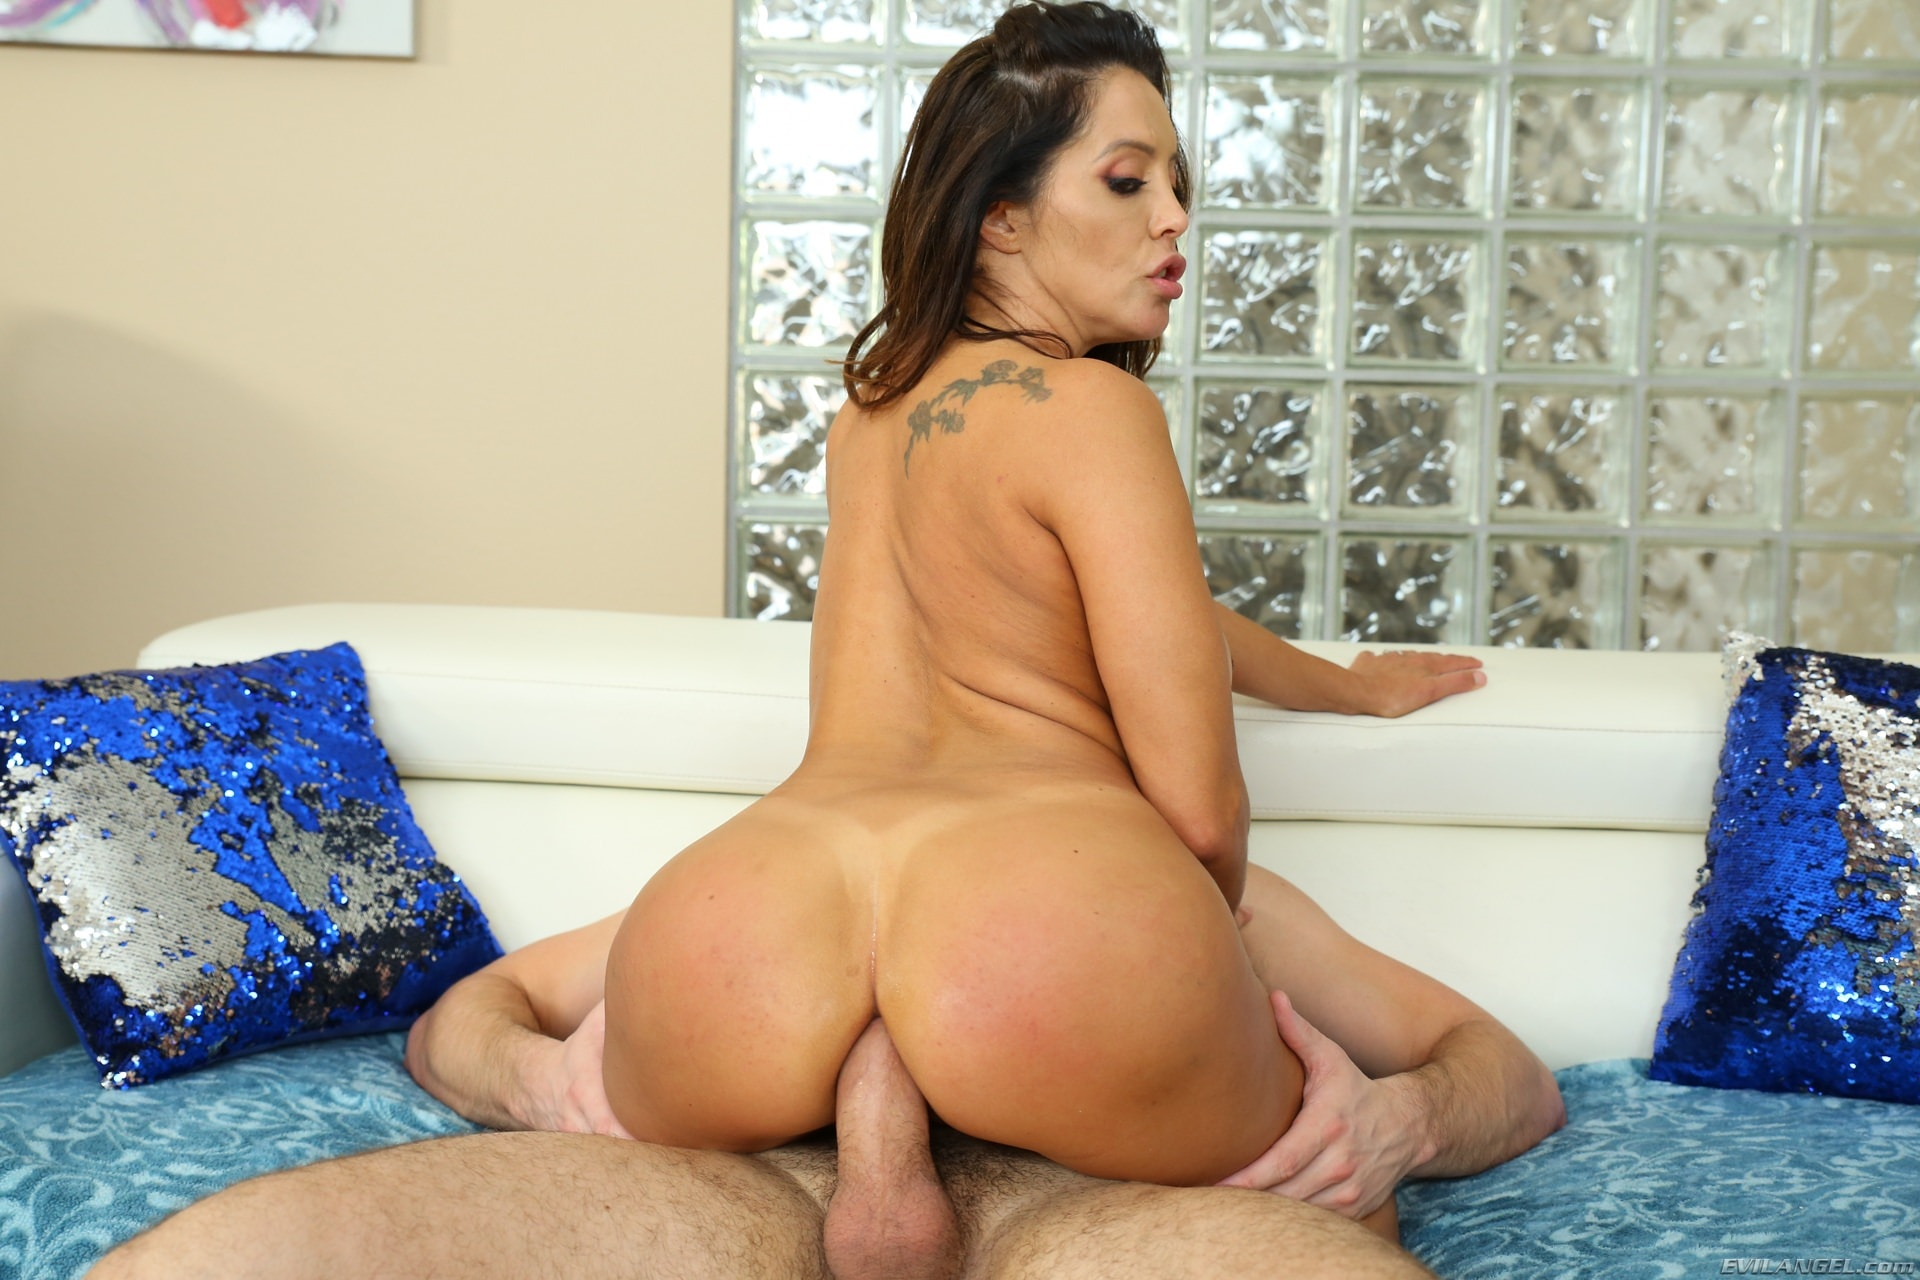 Evil Angel 'Is A HotWife 3' starring Francesca Le (Photo 4)